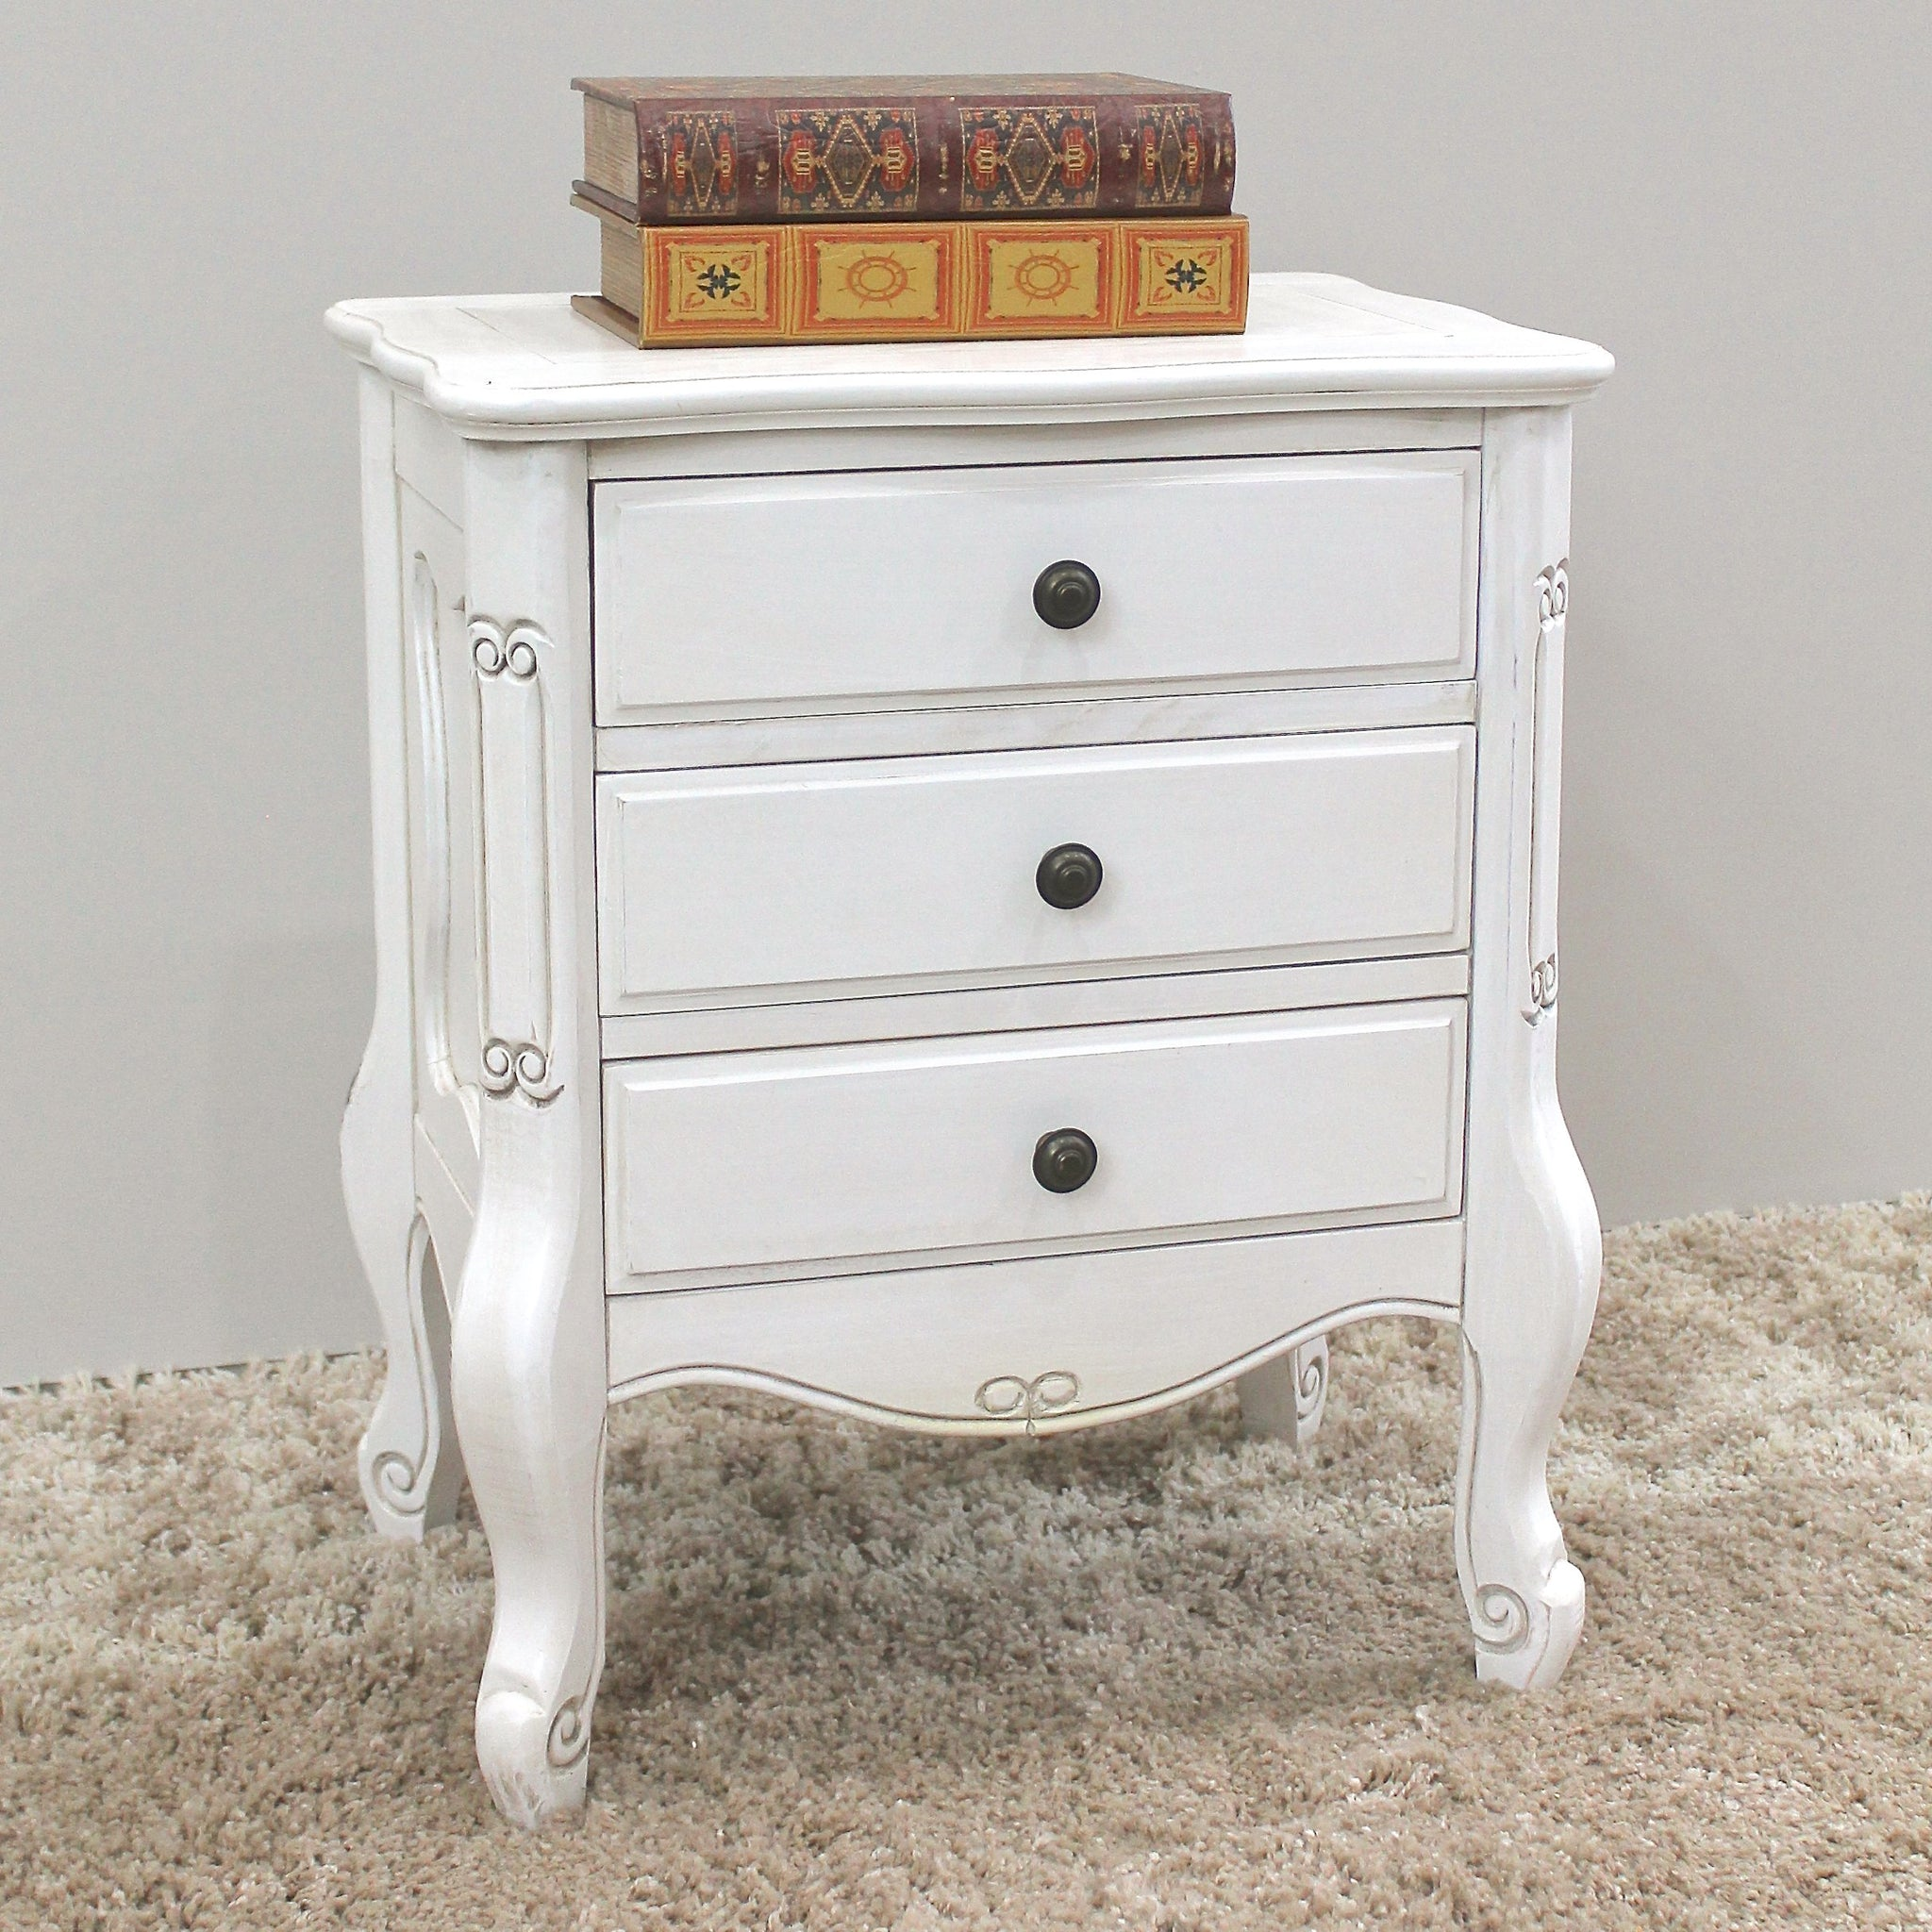 Windsor Carved Wood Three Drawer Table - Antique White